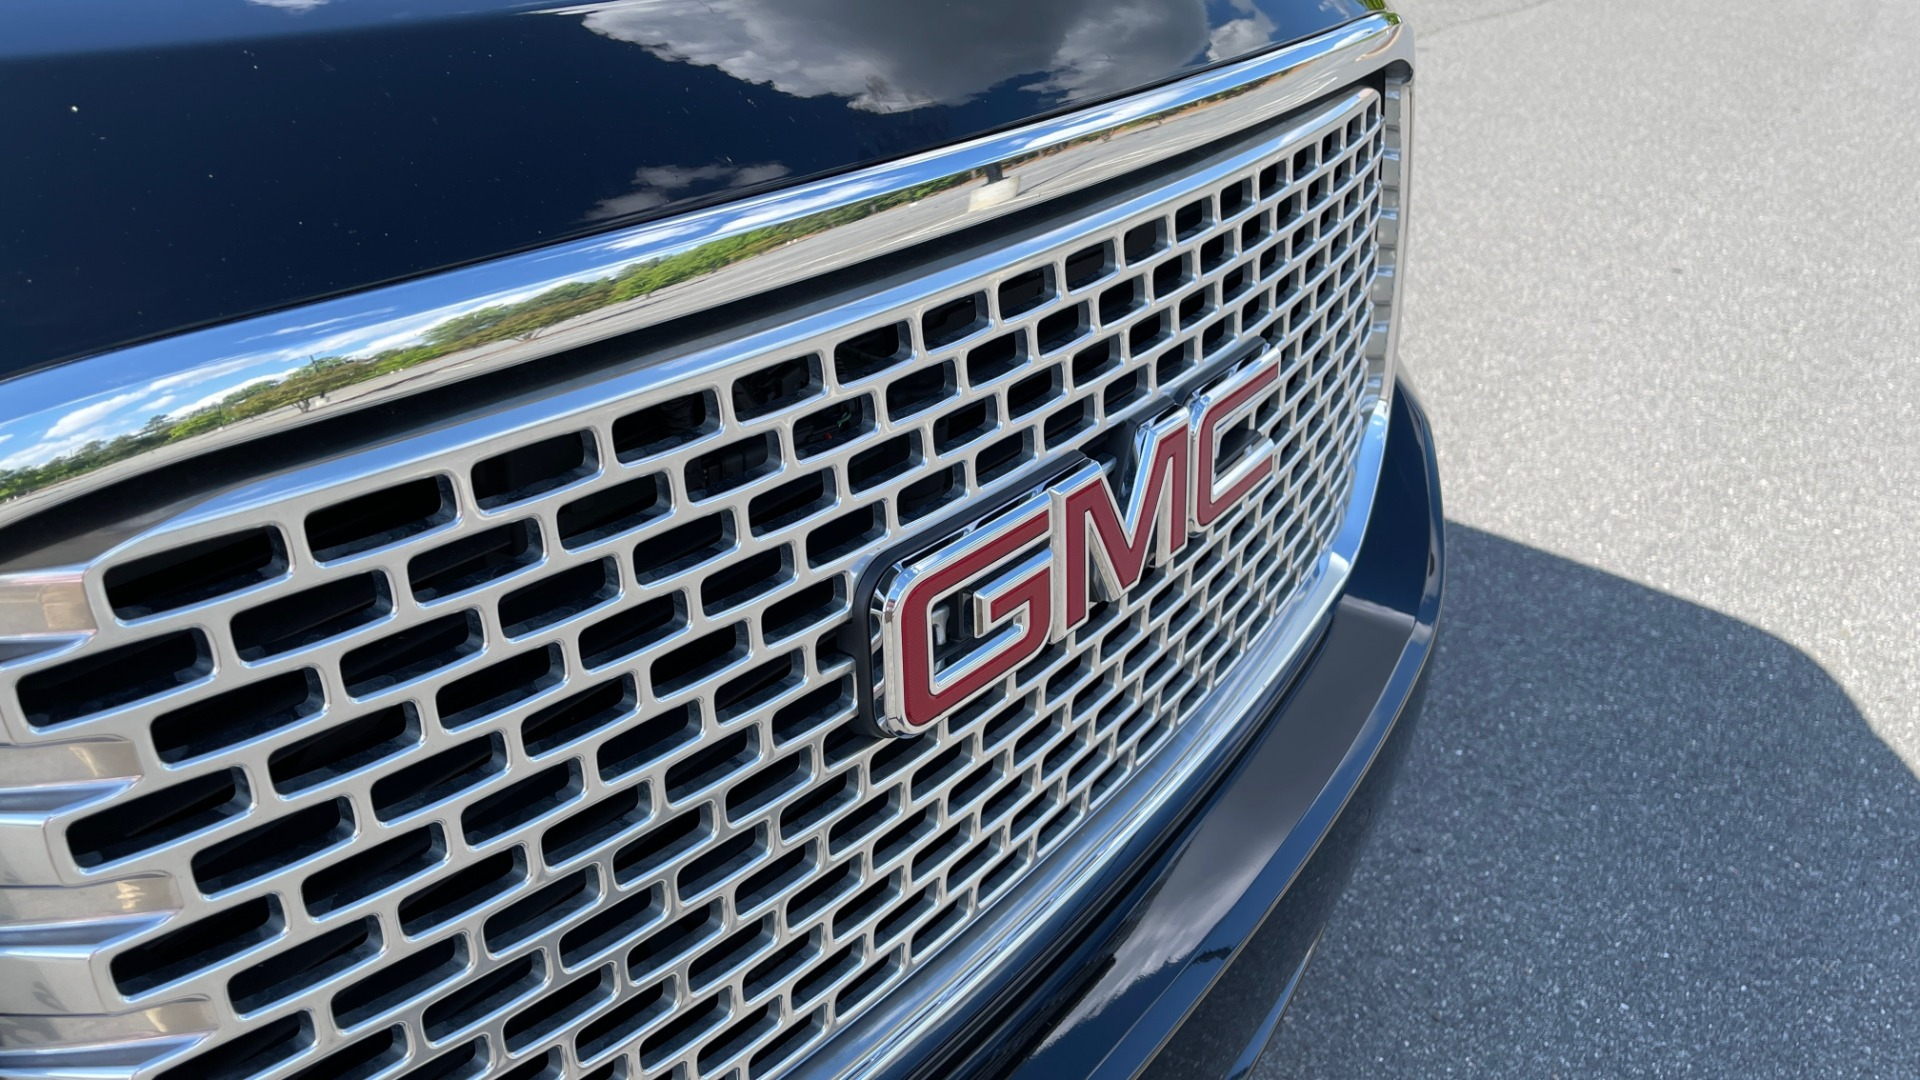 Used 2017 GMC YUKON DENALI 4WD / OPEN ROAD / NAV / ENTERTAINMENT / SUNROOF / ADAPT CRUISE for sale Sold at Formula Imports in Charlotte NC 28227 17